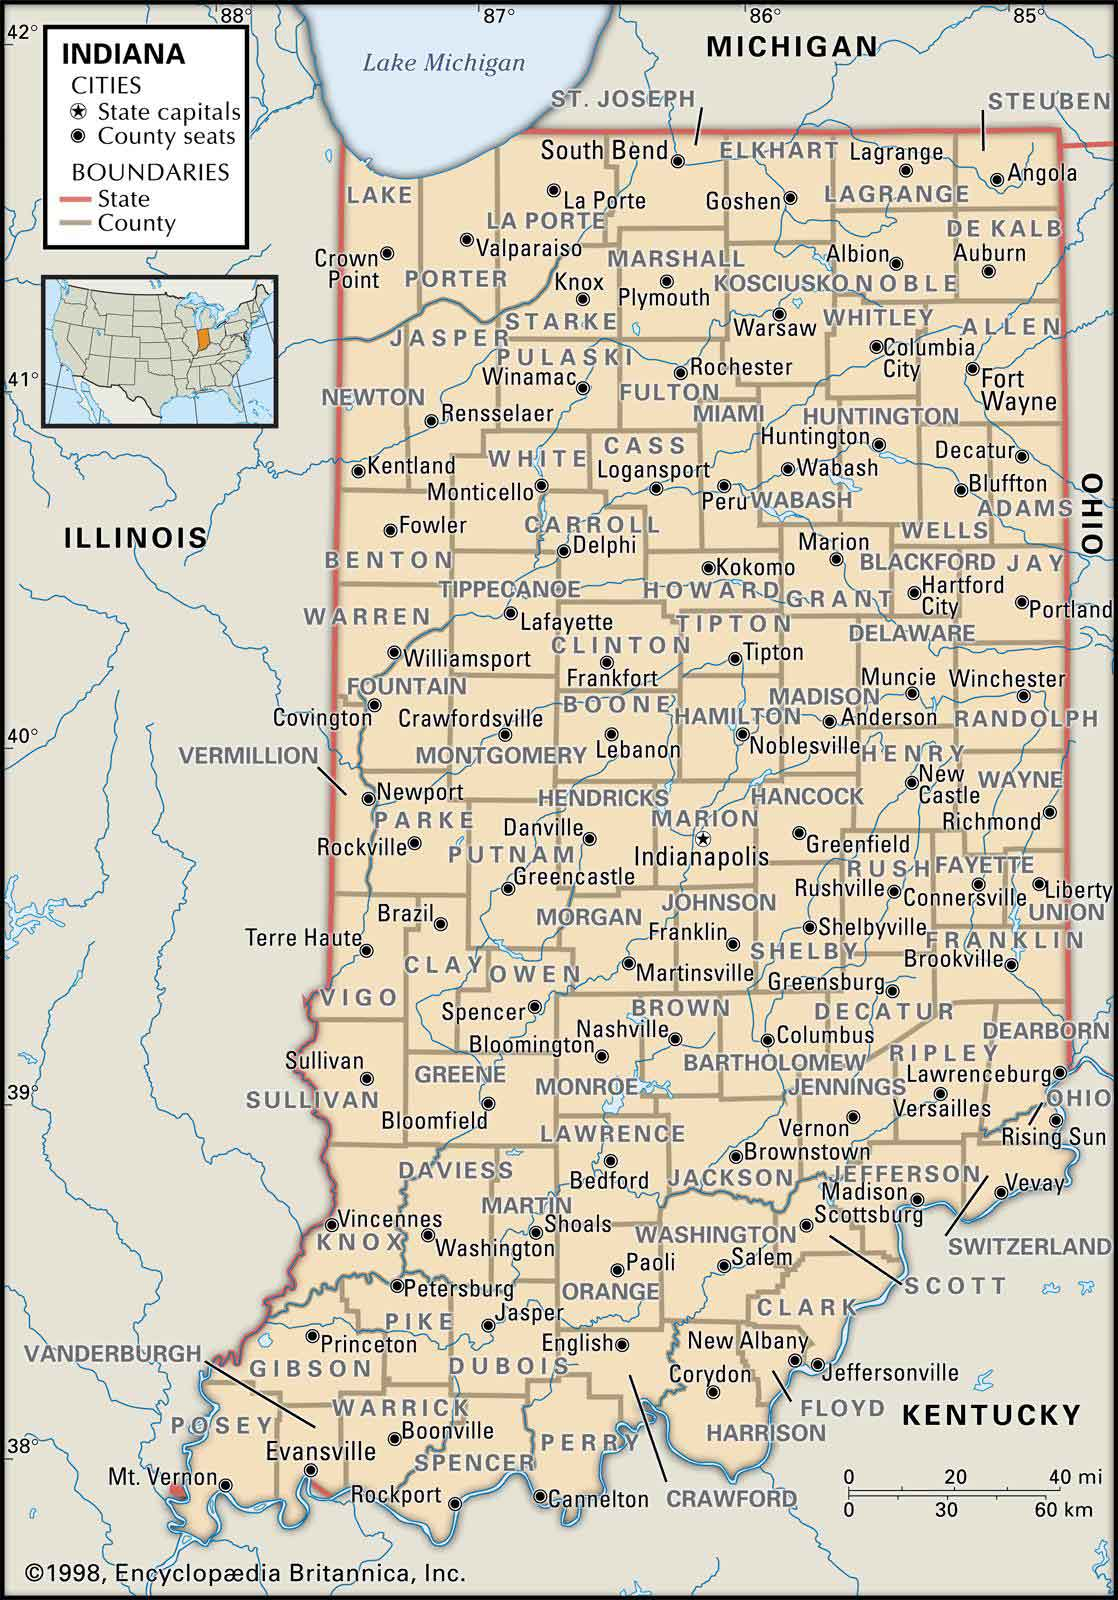 Picture of: Old Historical City County And State Maps Of Indiana